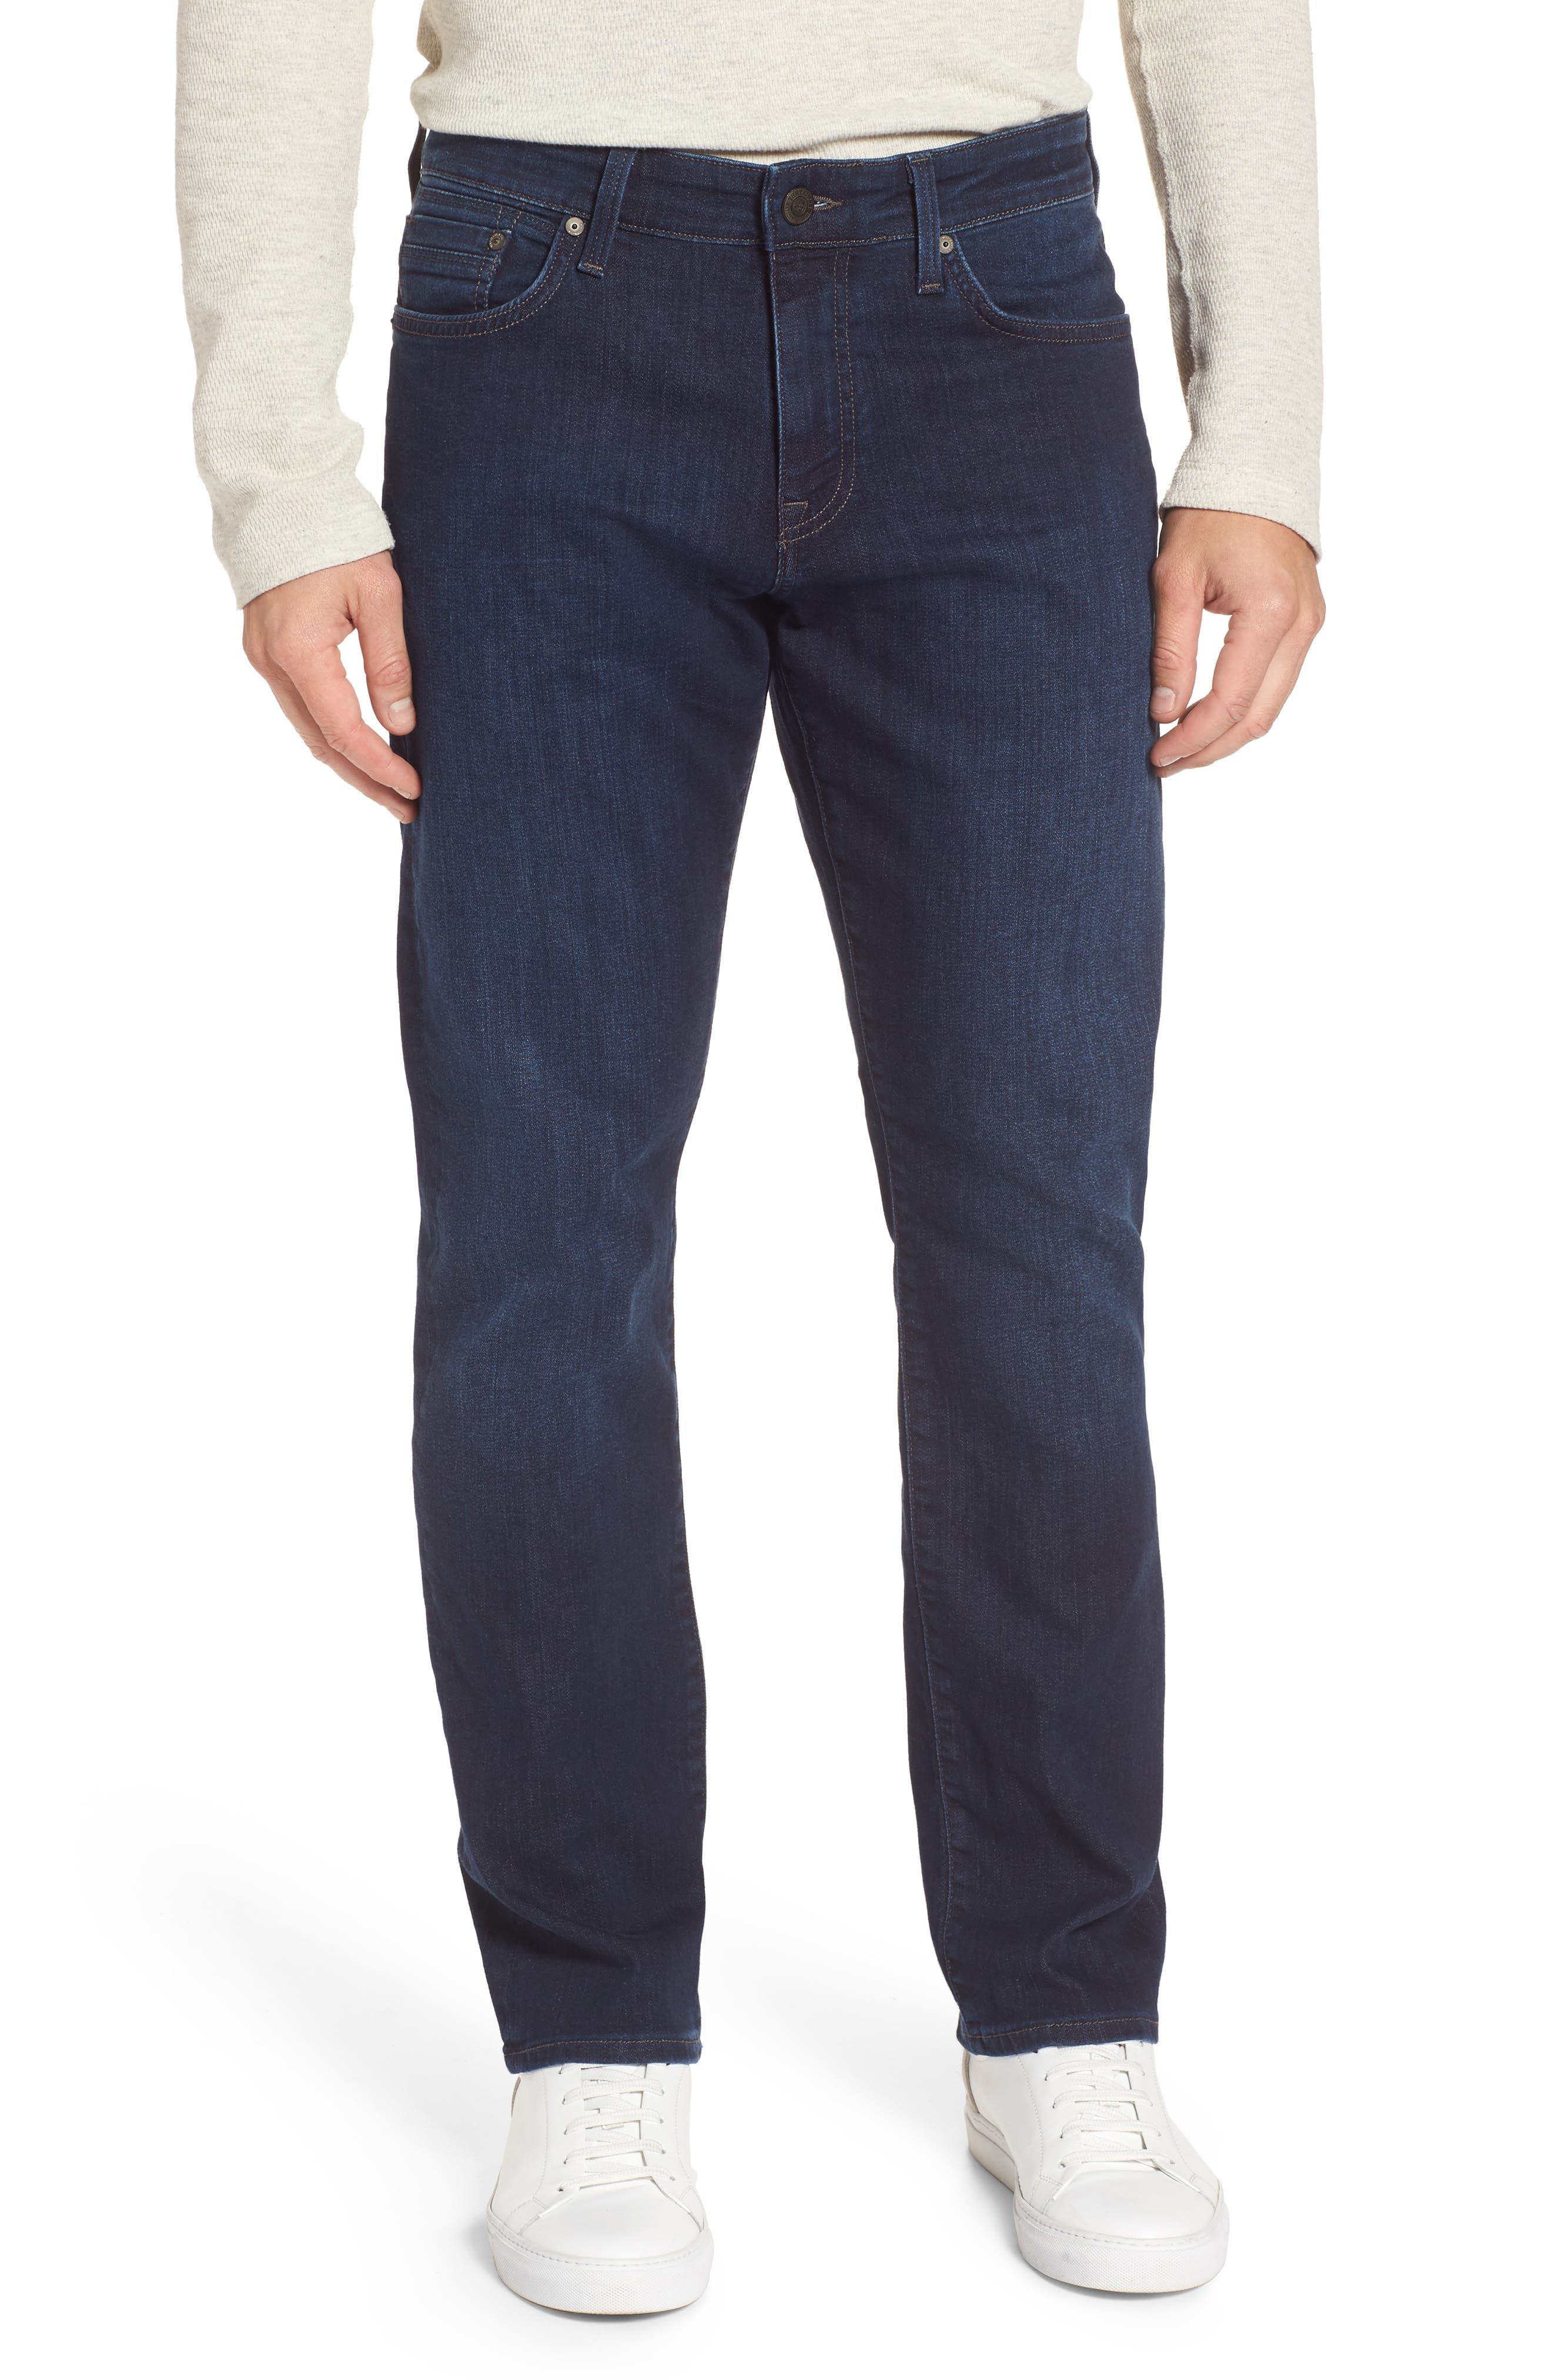 Myles Straight Fit Jeans,                         Main,                         color, Deep Clean Comfort